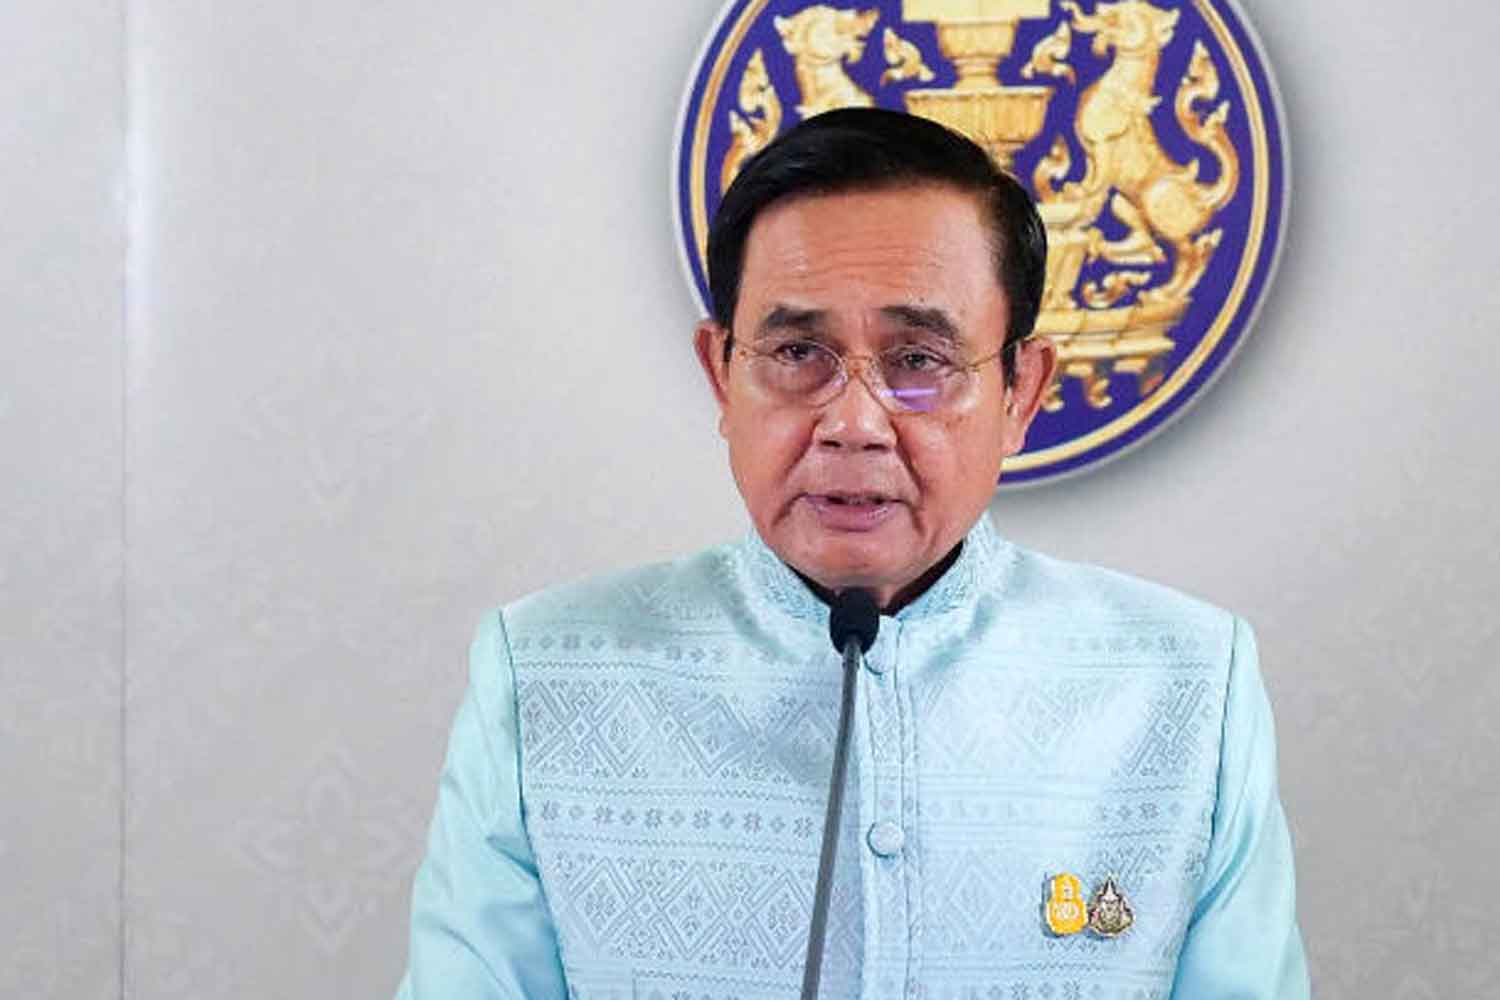 Prime Minister Prayut Chan-o-cha announces the cabinet's decision that Thai Airways International will file for bankruptcy, at Government House in Bangkok on Tuesday. (Government House photo)